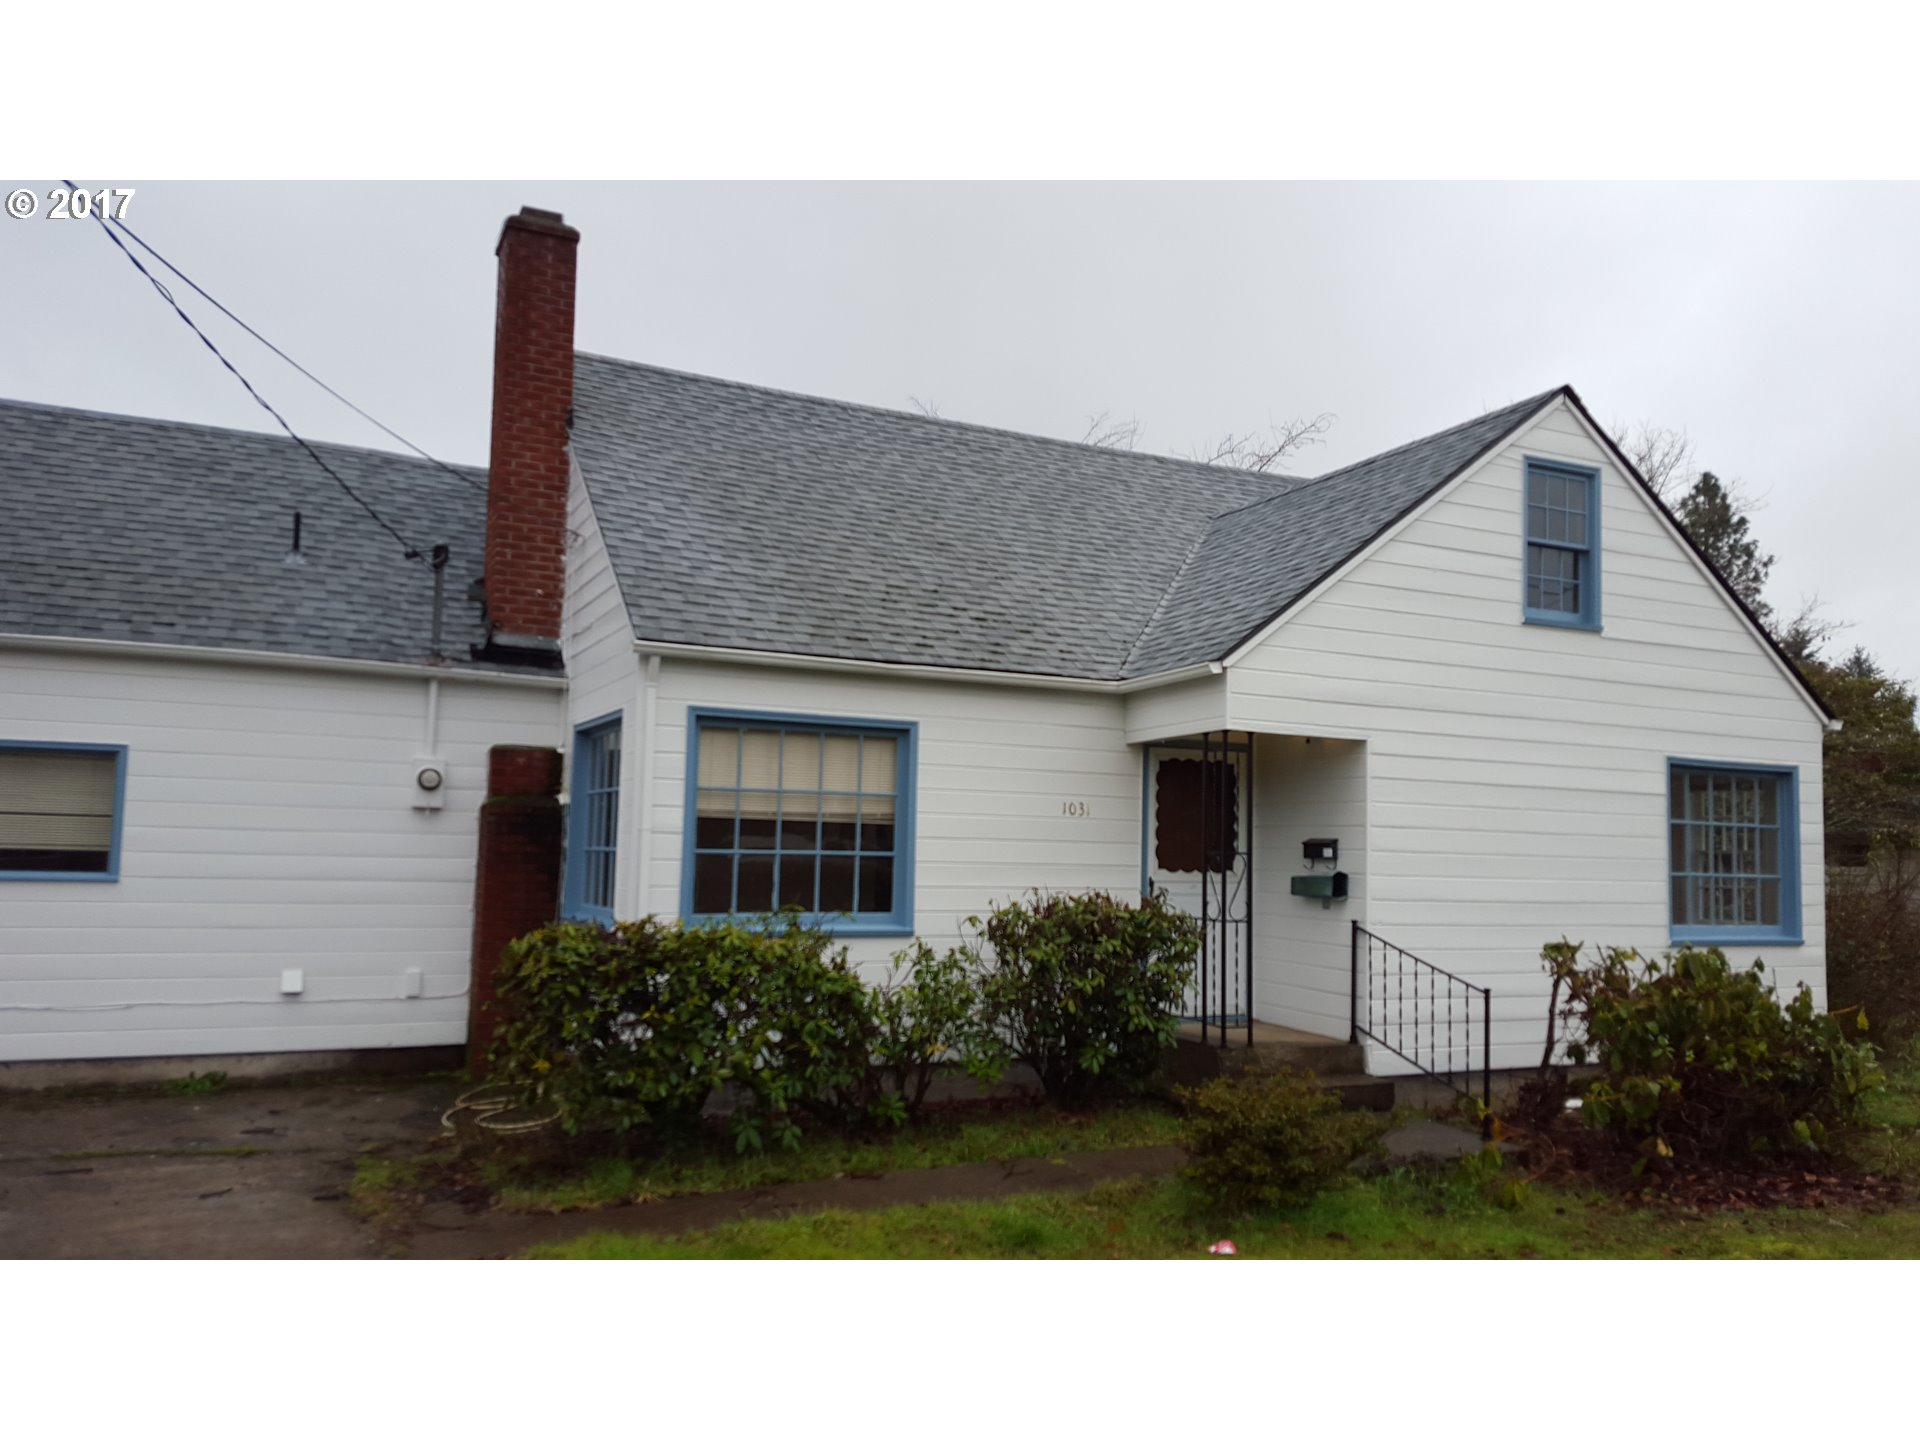 1031 S 6TH ST, Cottage Grove, OR 97424